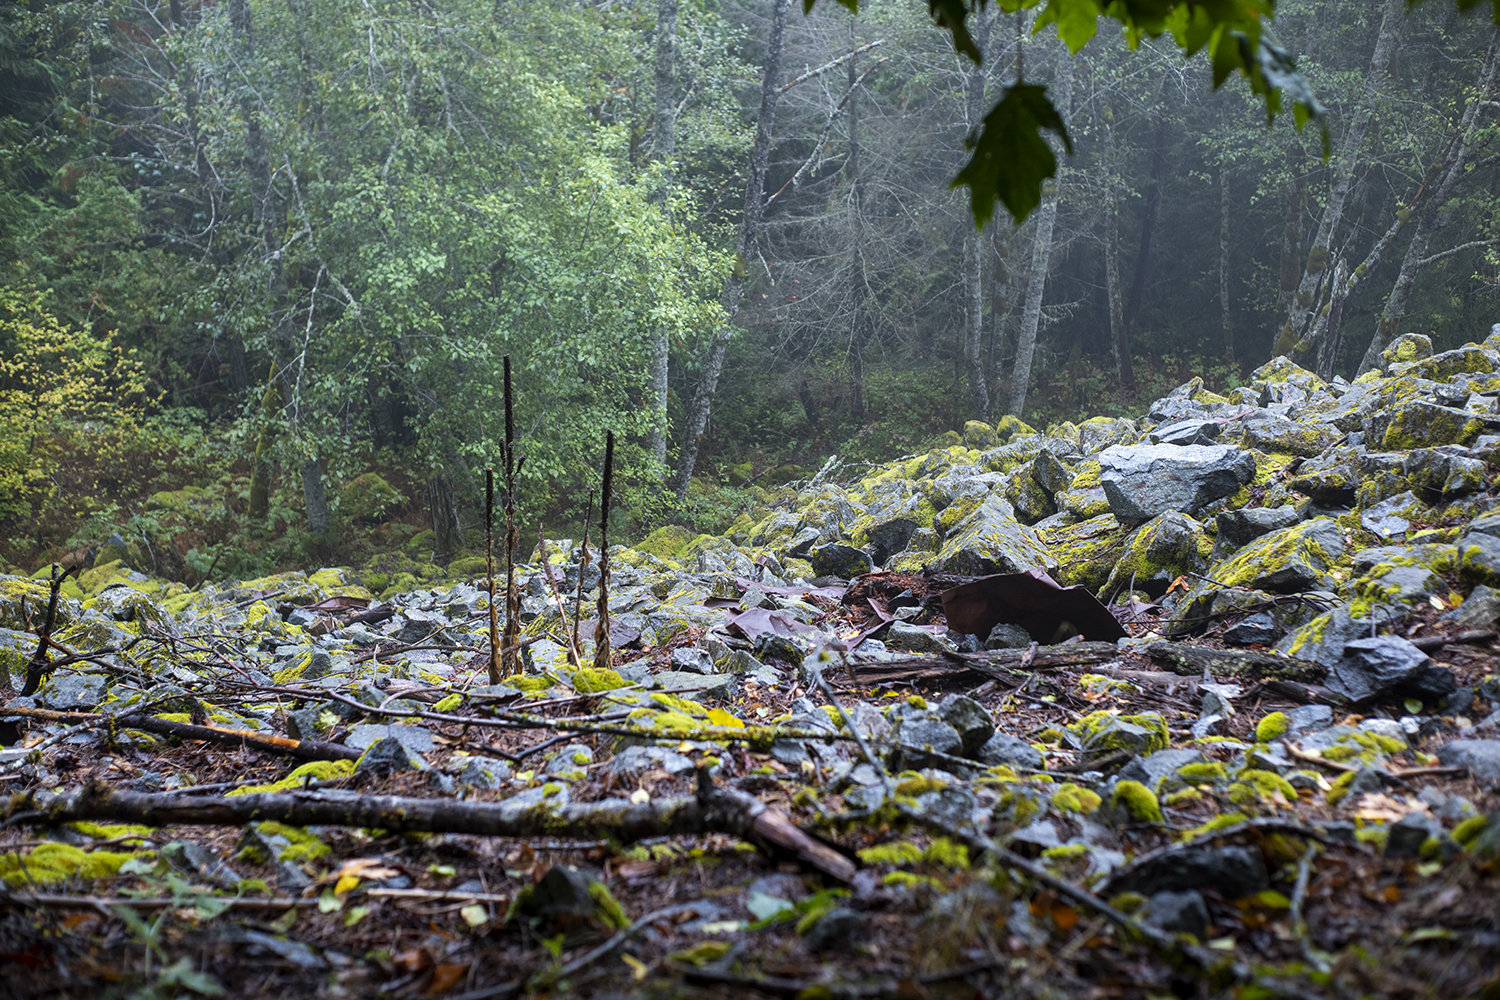 Noted as one of the country's worst rail disasters and deadliest avalanches of all time, the town of Wellington was soon renamed Tye in hopes of distancing memories from a disastrous history. The Iron Goat Trail leads along the gorge where warped debris and rusted metal can still be seen today. (Image: Rachael Jones / Seattle Refined)